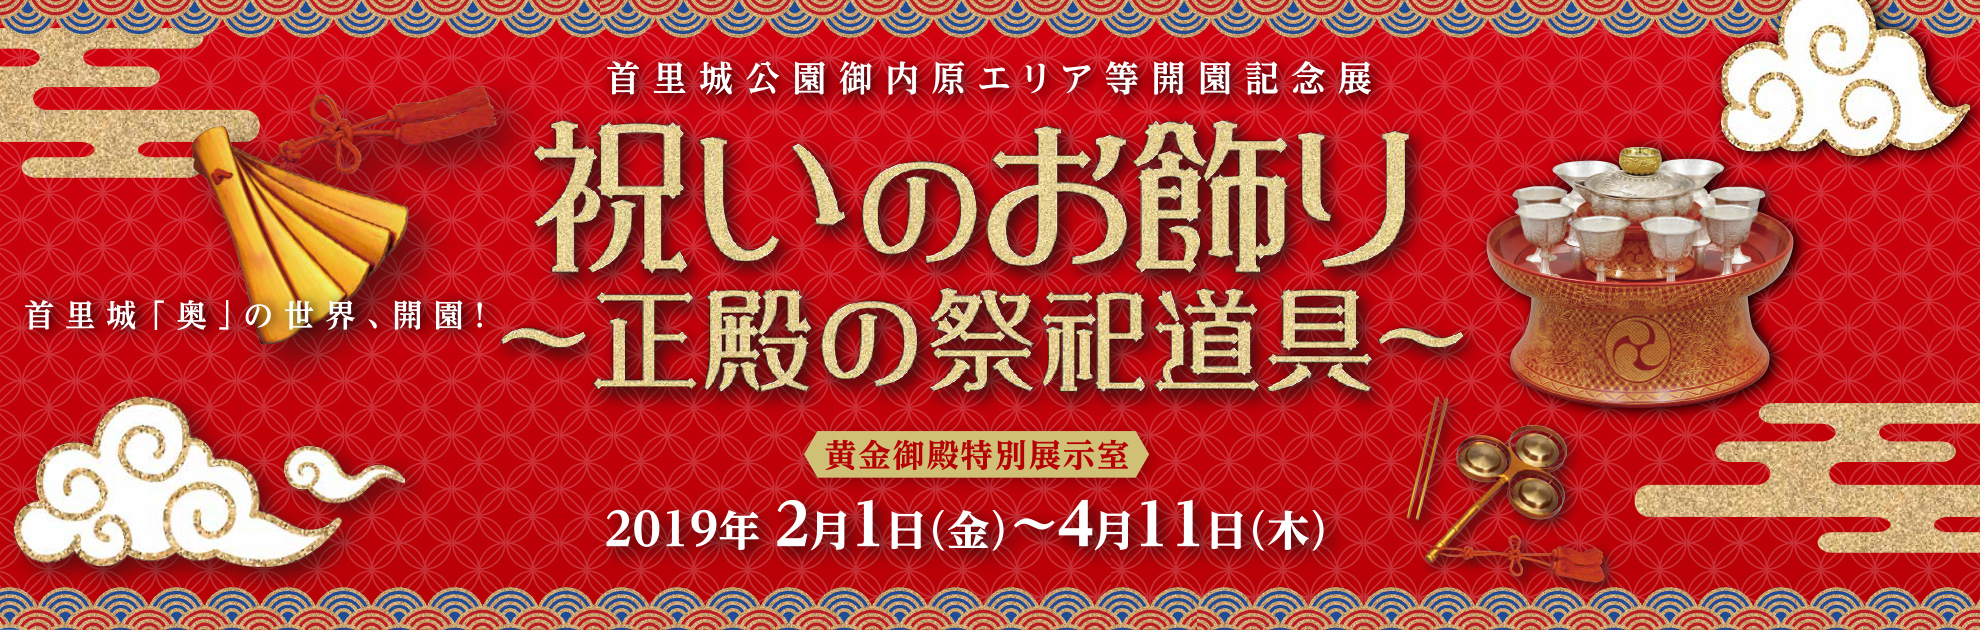 "Shurijo Castle Park Uchihara areas opening of the park memory exhibition ""religious service tool ~ of figurehead - Tadashi of celebration"""